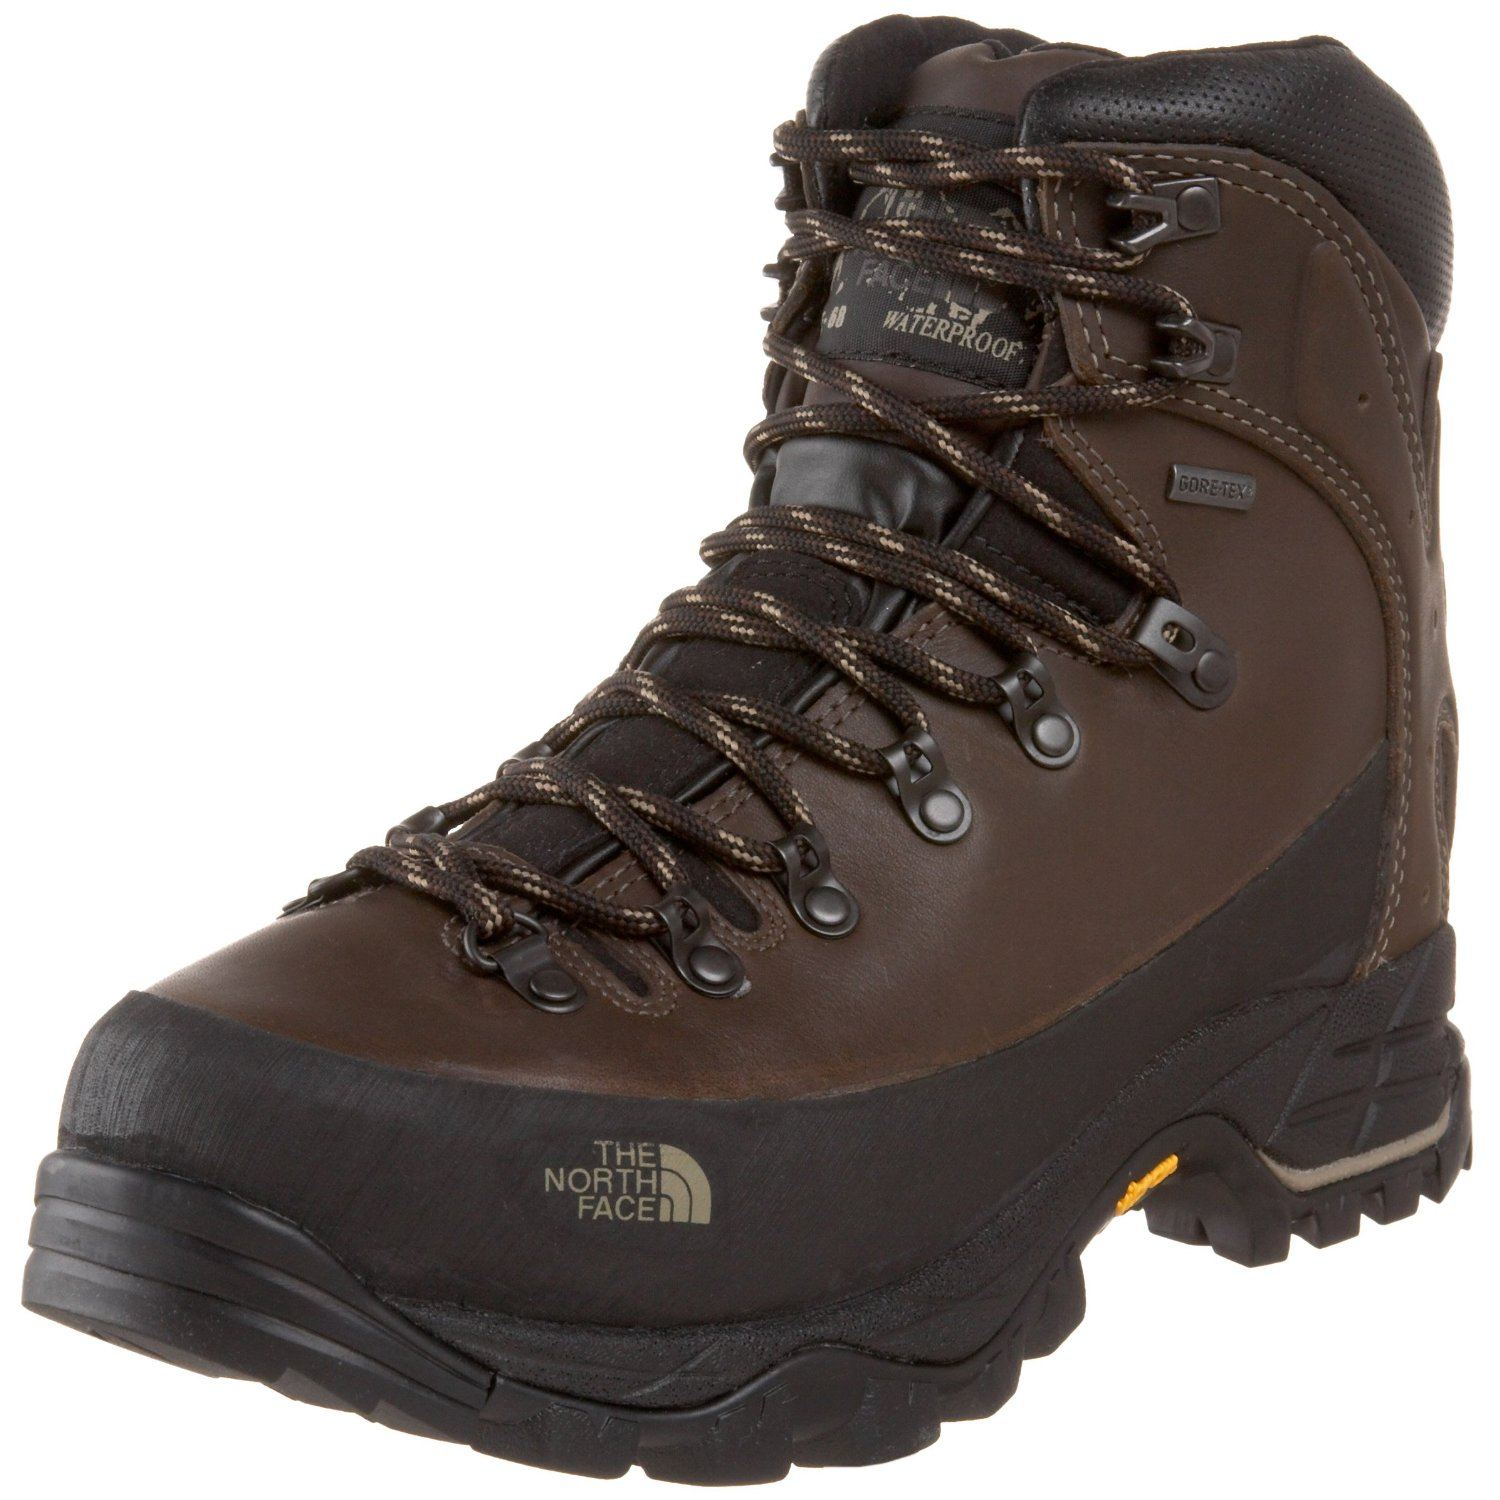 the mens jannu ii gtx hiking boot in brown for